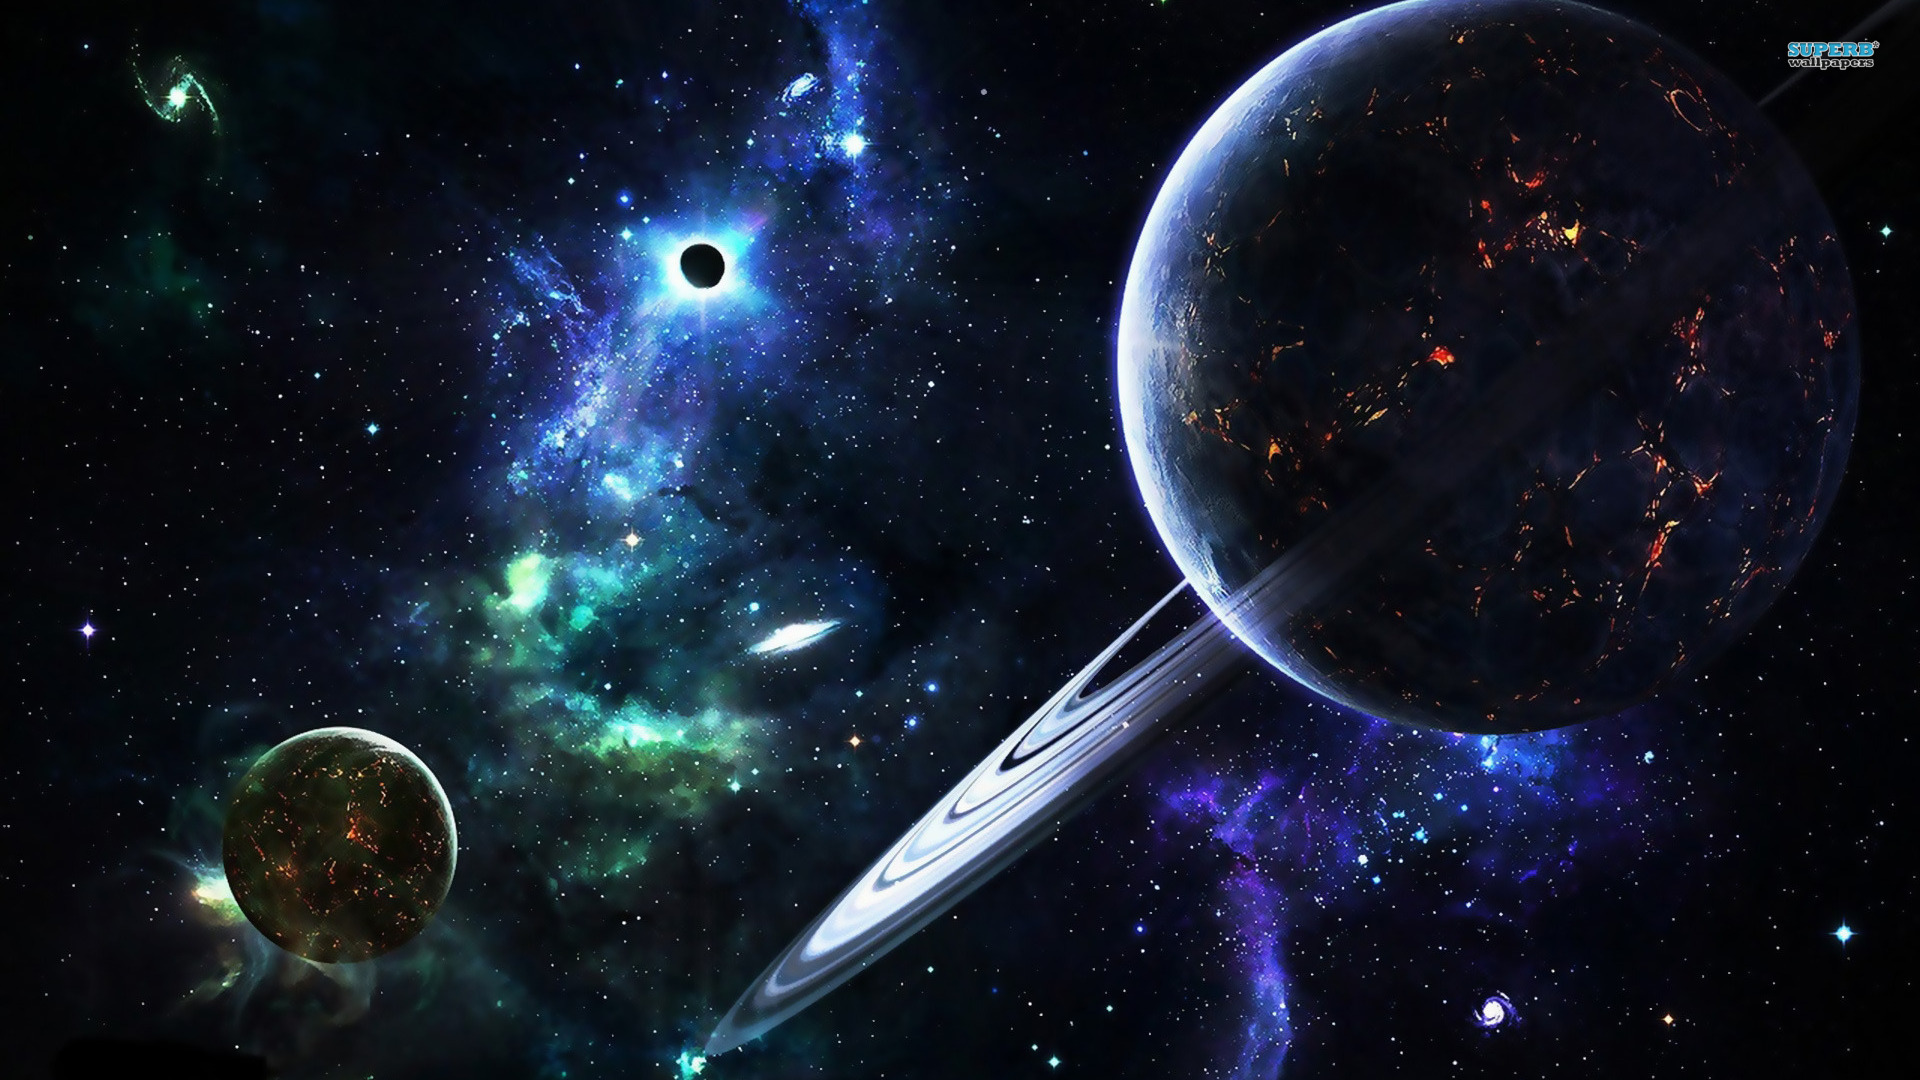 Galaxies 3D Windows 81 Theme and Wallpapers All for Windows 10 1920x1080